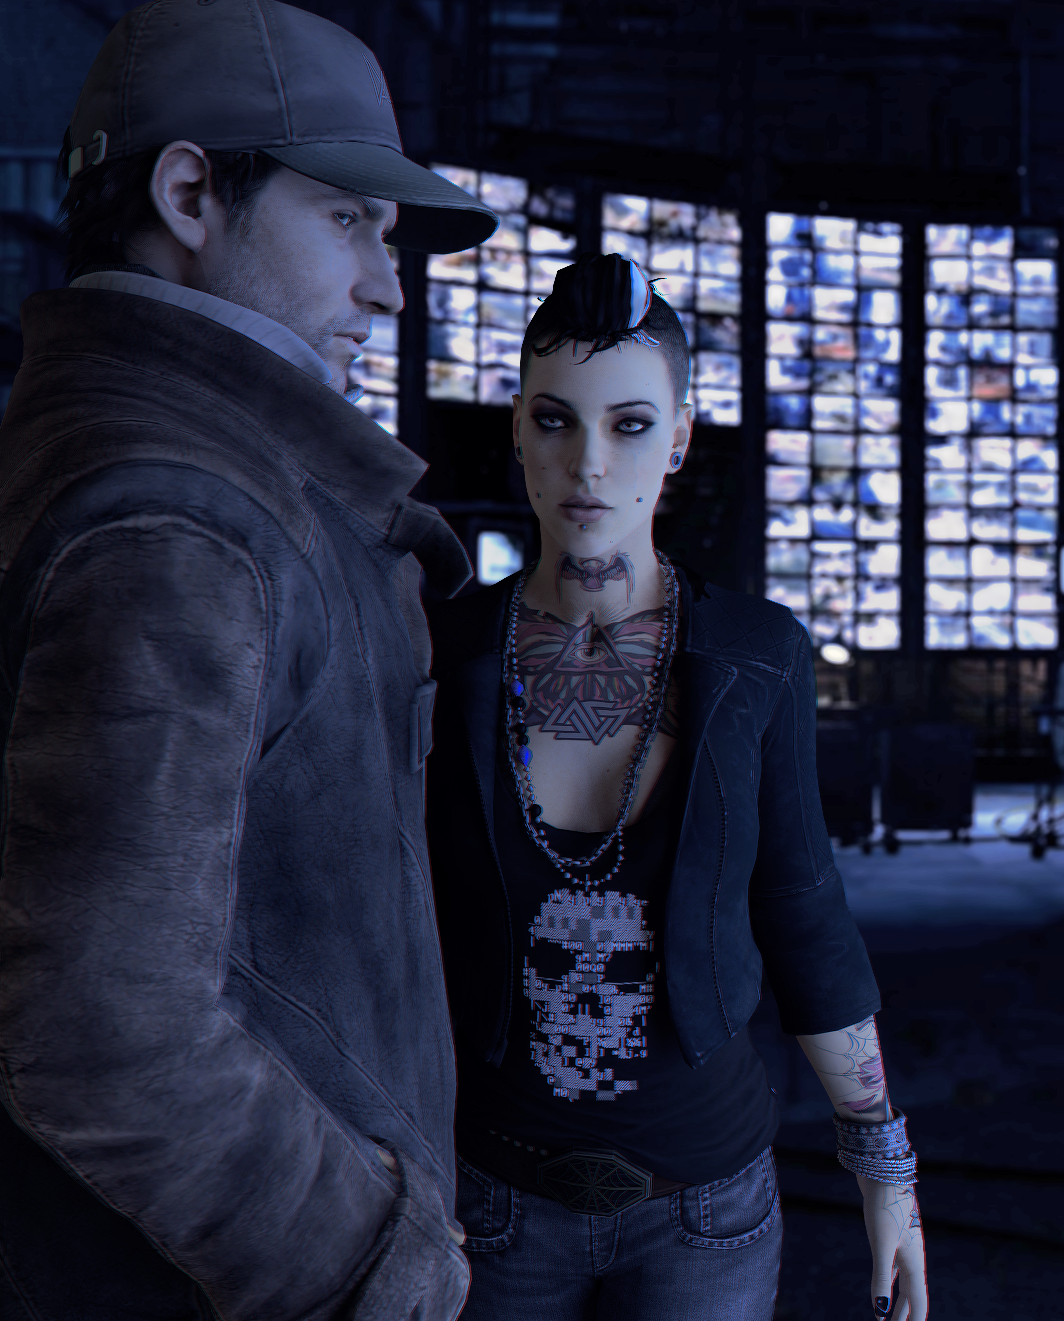 watch dogs clara and aiden relationship